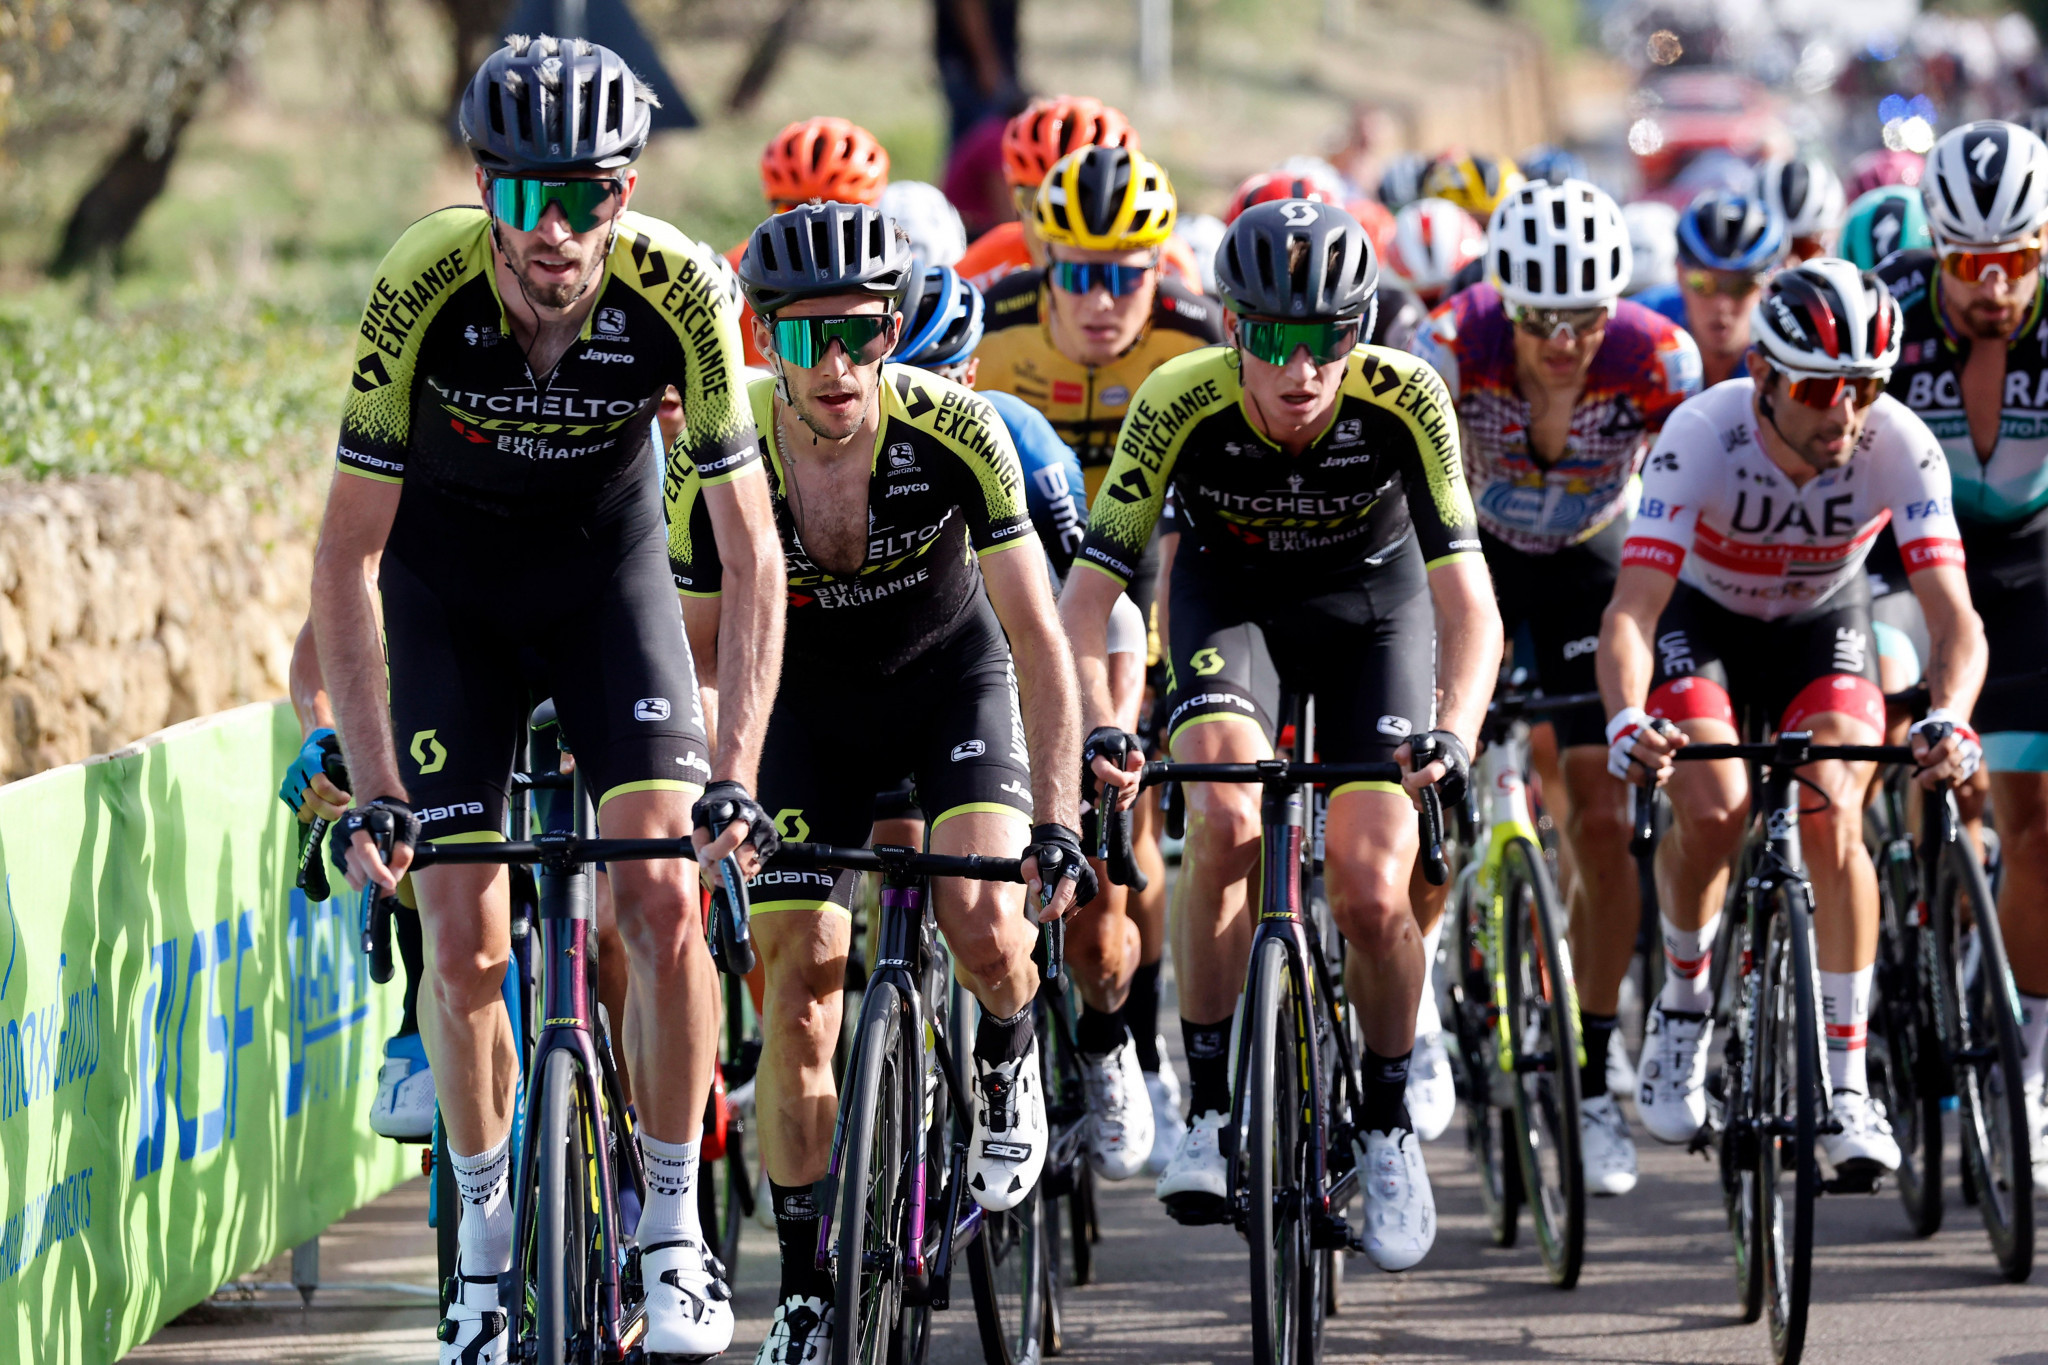 Mitchelton-Scott has withdrawn from the Giro d'Italia ©Getty Images